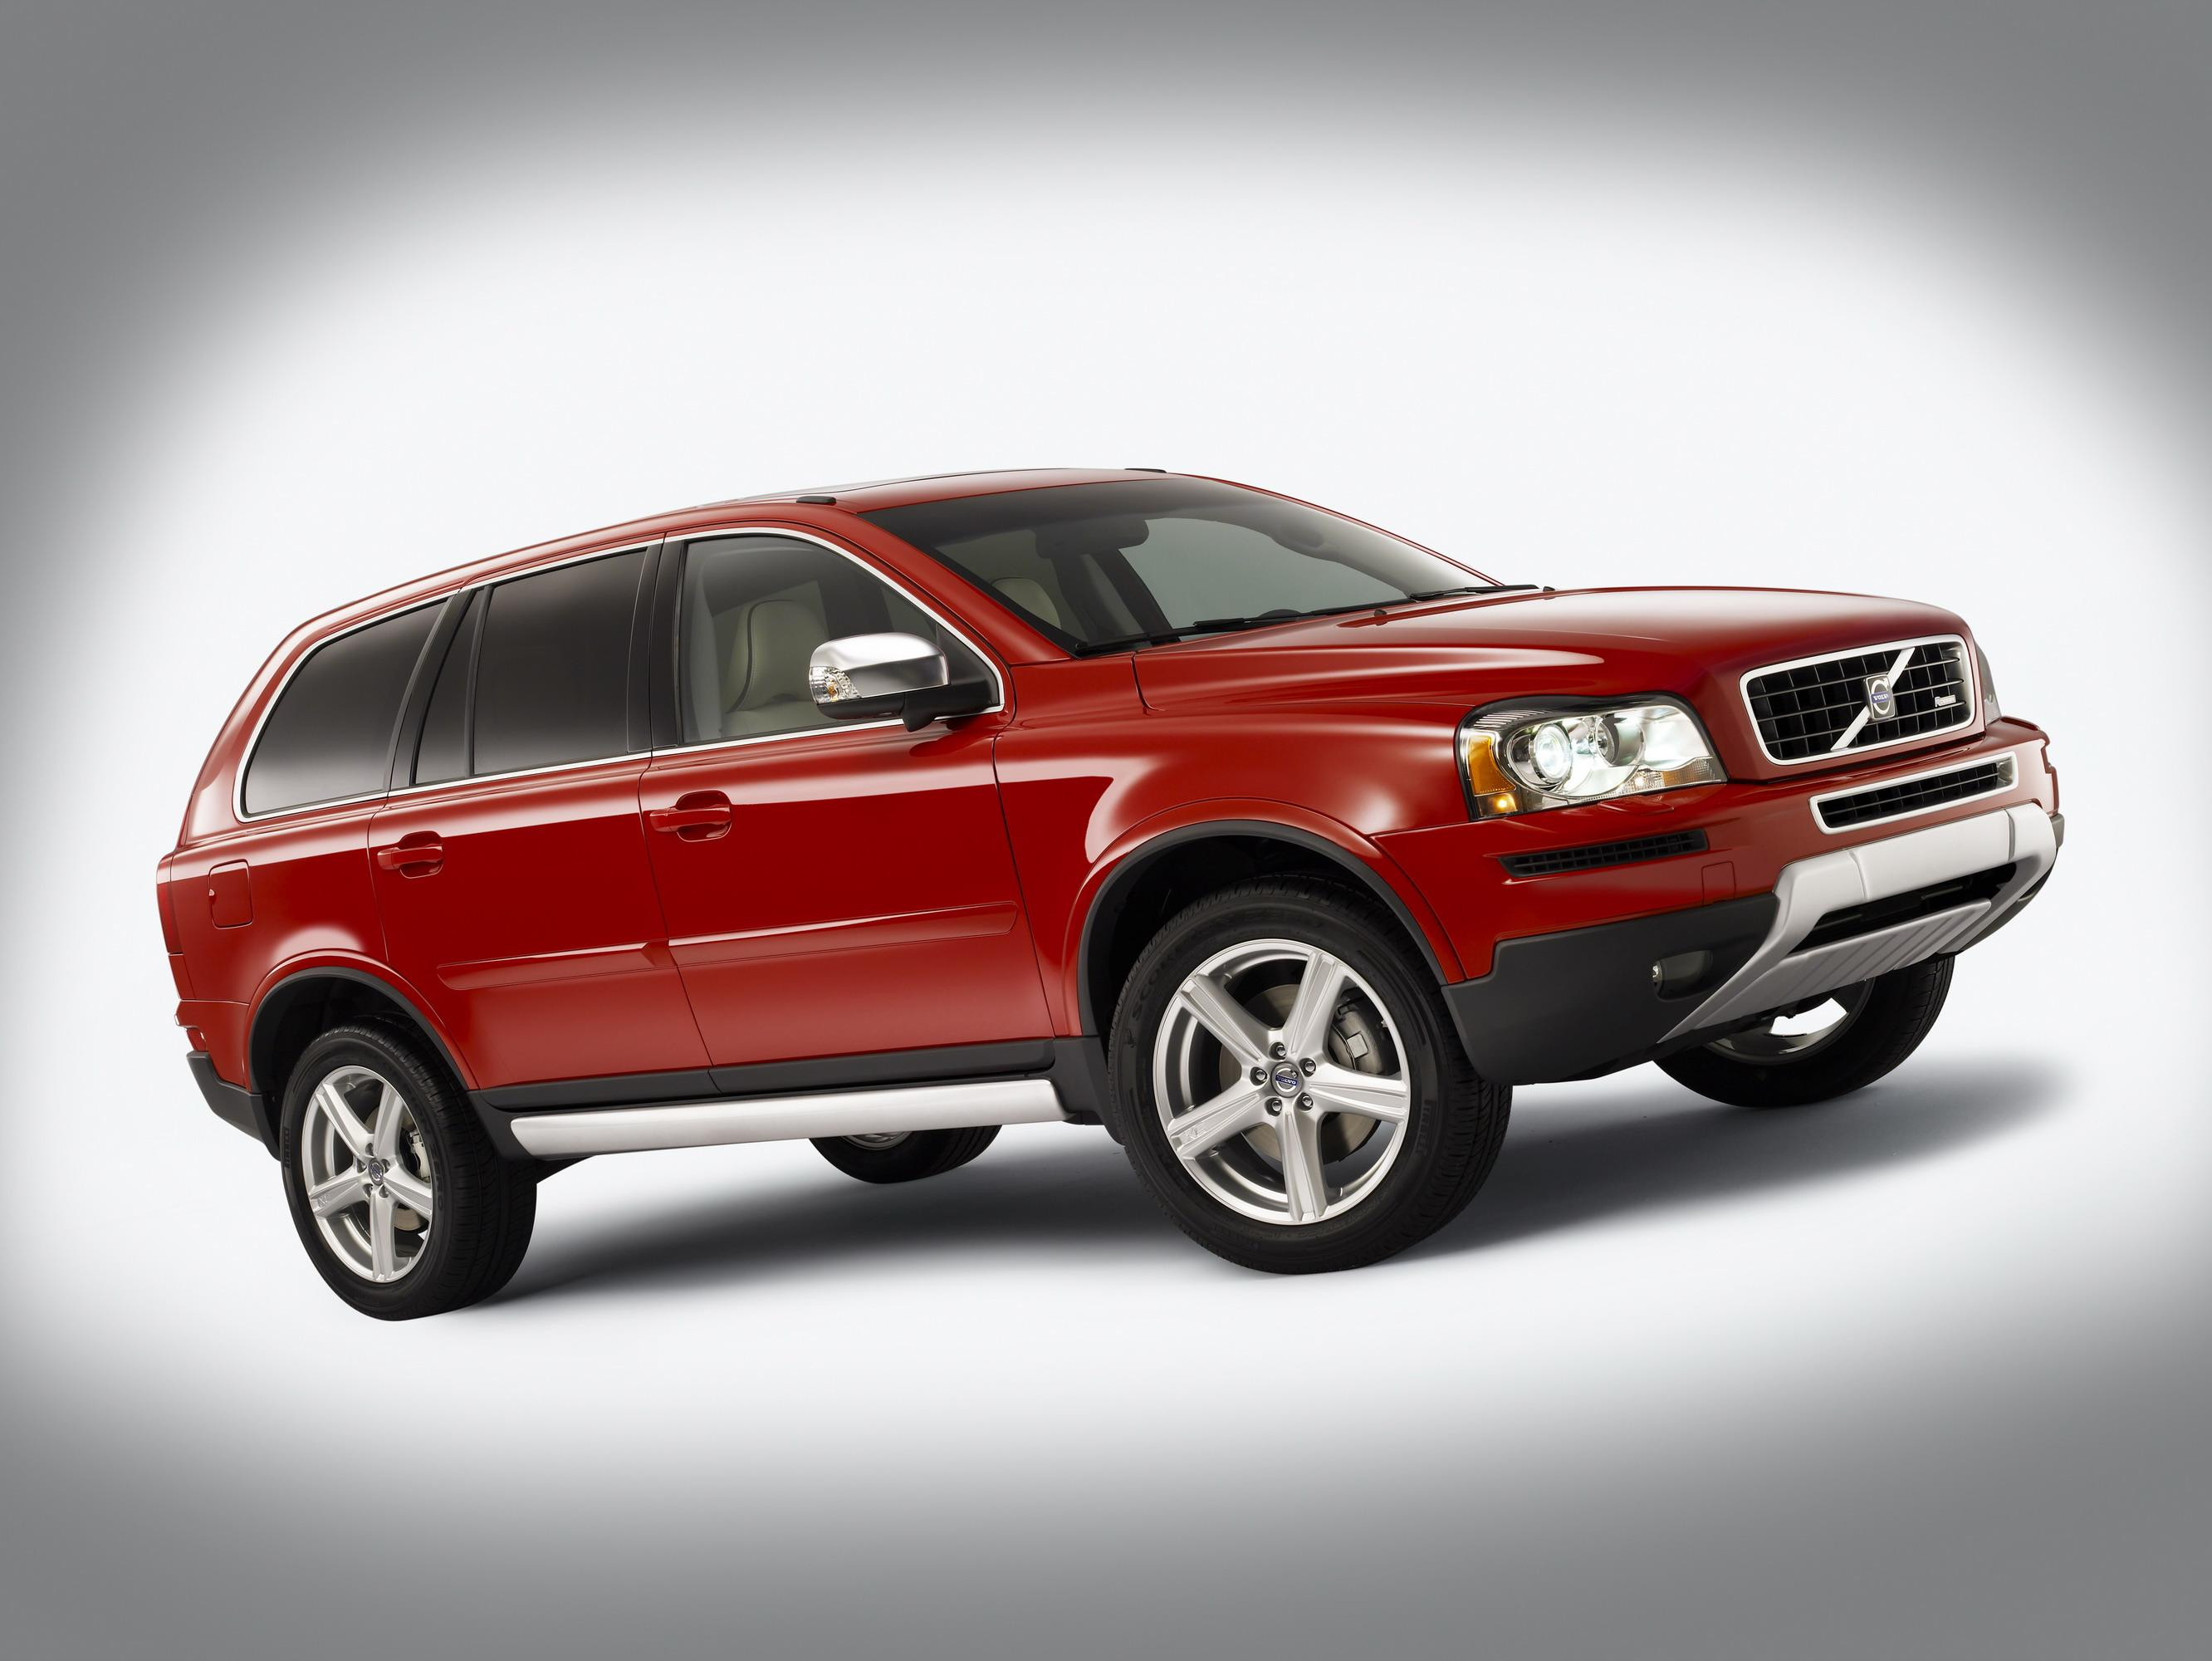 2008 volvo xc90 r design review top speed. Black Bedroom Furniture Sets. Home Design Ideas